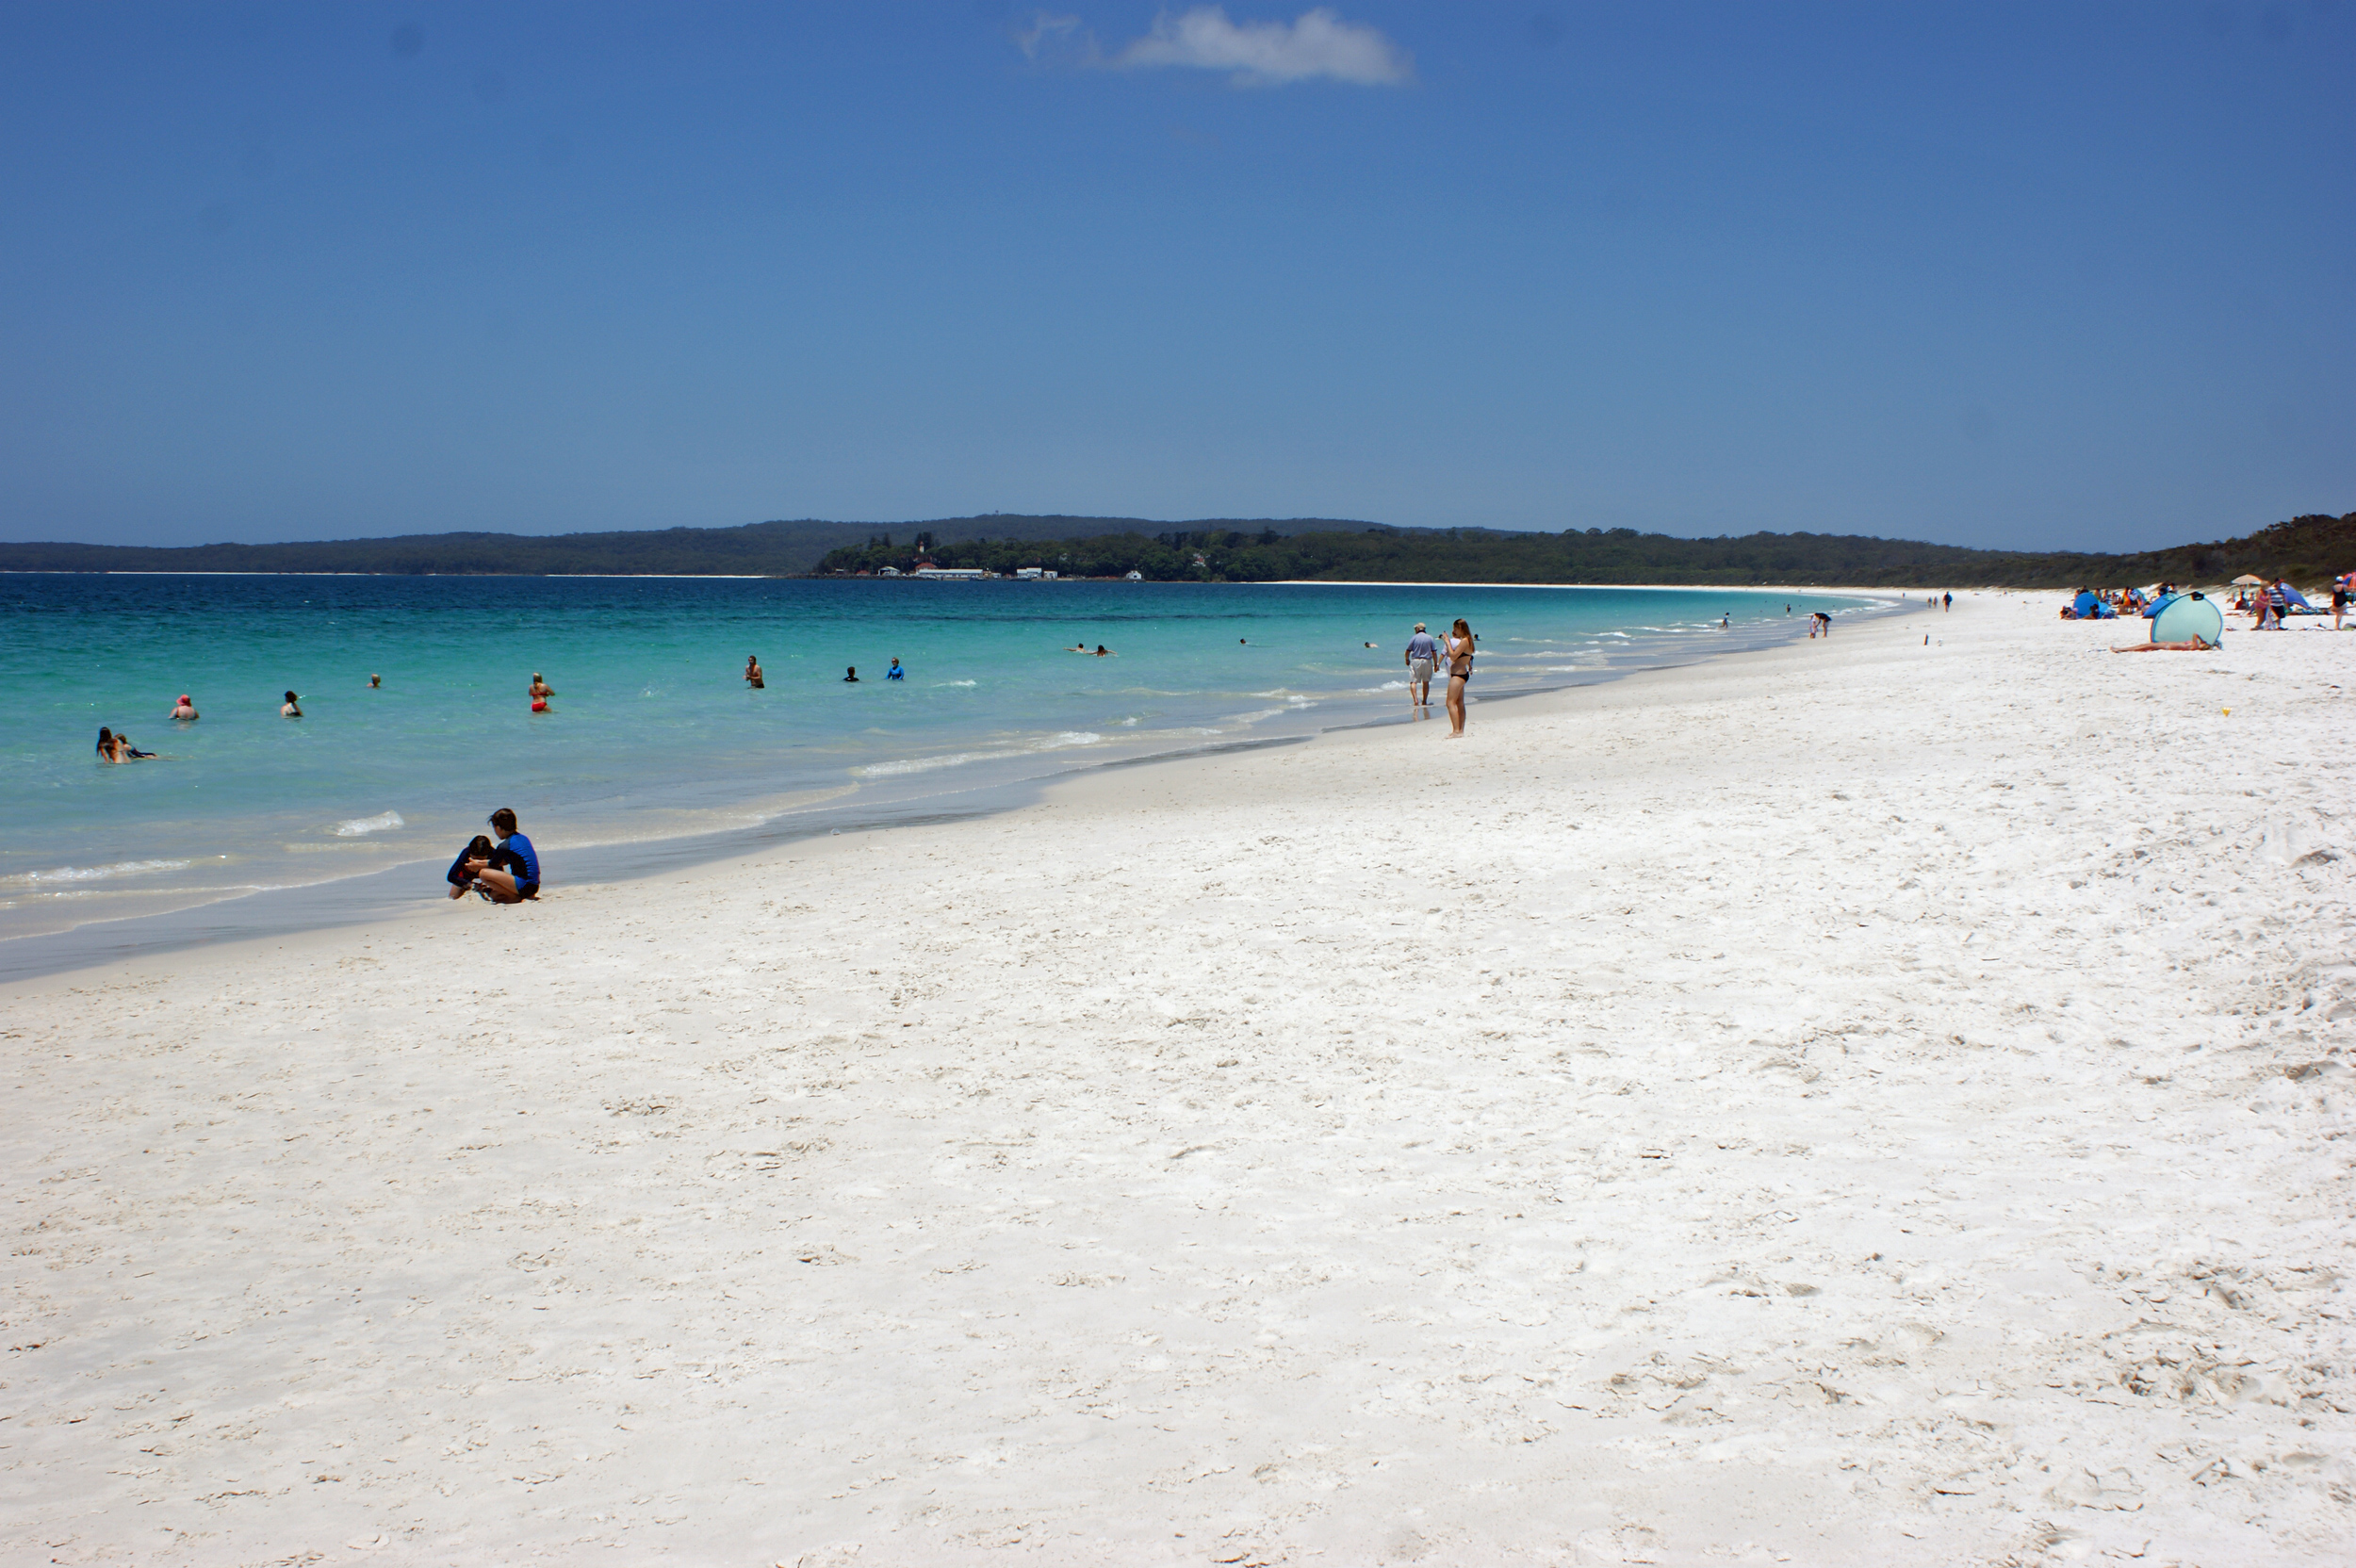 Hyams Beach By albinfo (Own work) [CC-BY-SA-3.0 (http://creativecommons.org/licenses/by-sa/3.0)], via Wikimedia Commons